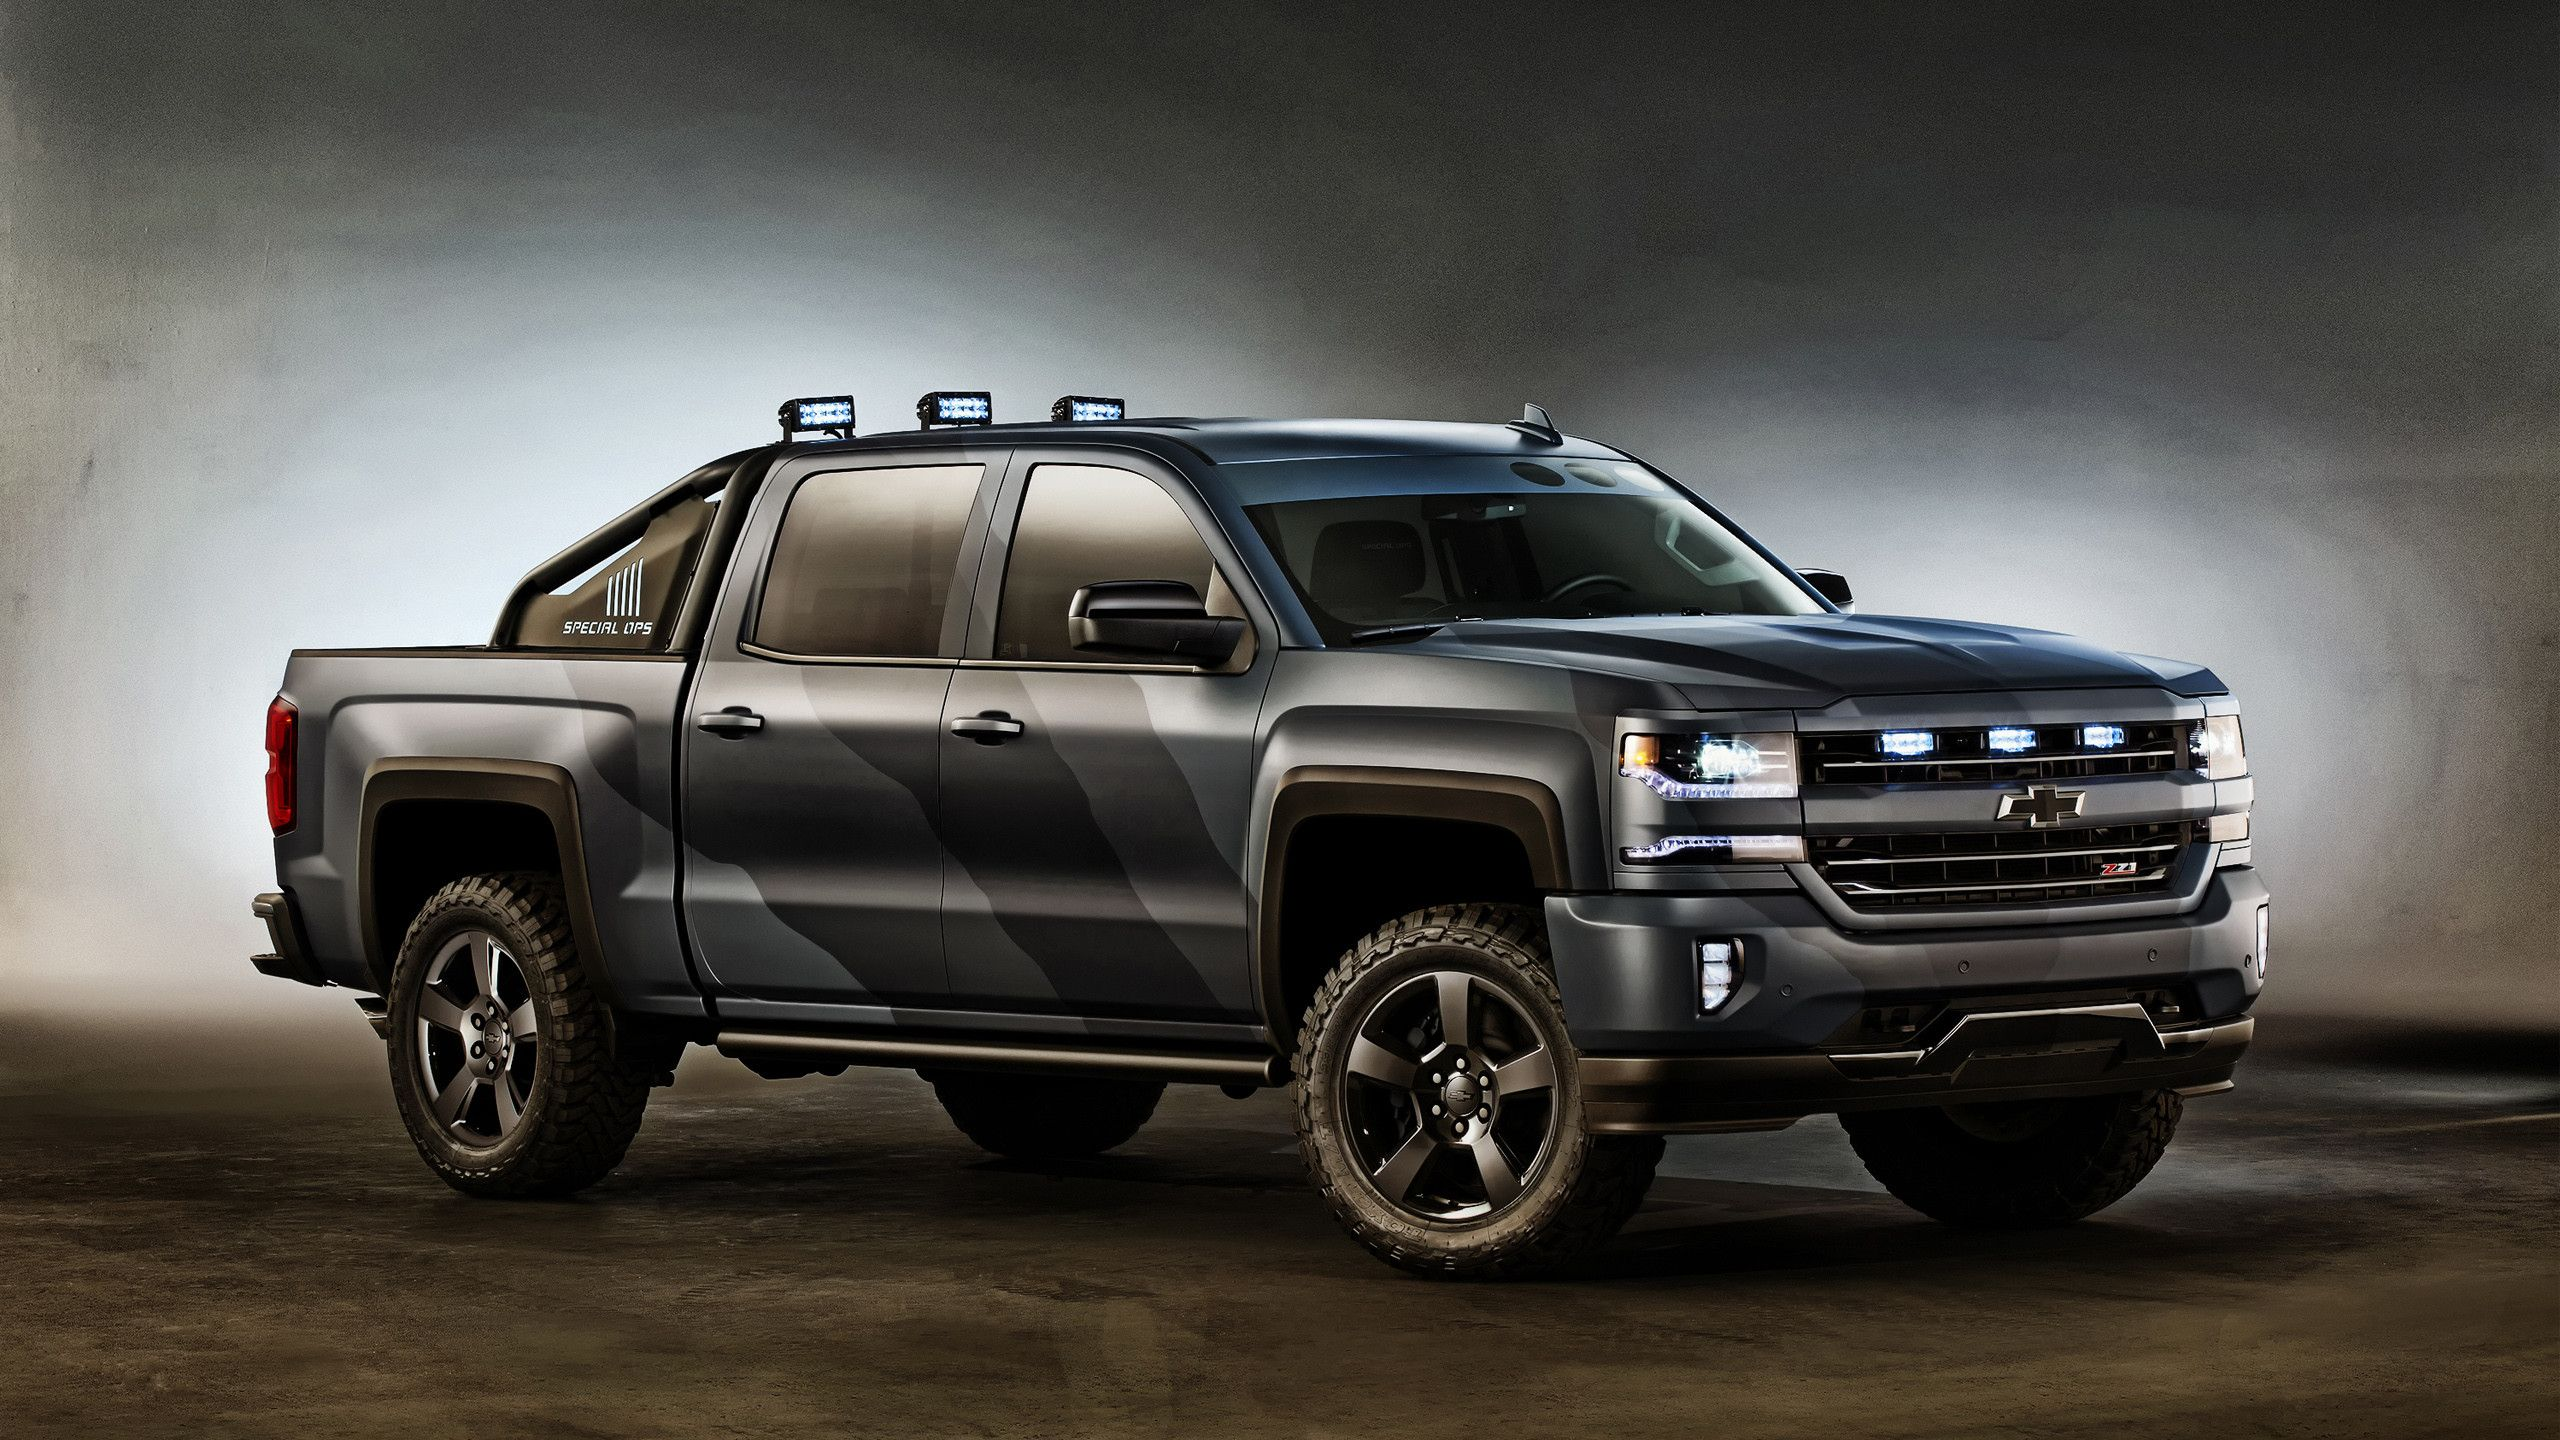 Chevrolet Silverado Wallpapers Top Free Chevrolet Silverado Backgrounds Wallpaperaccess